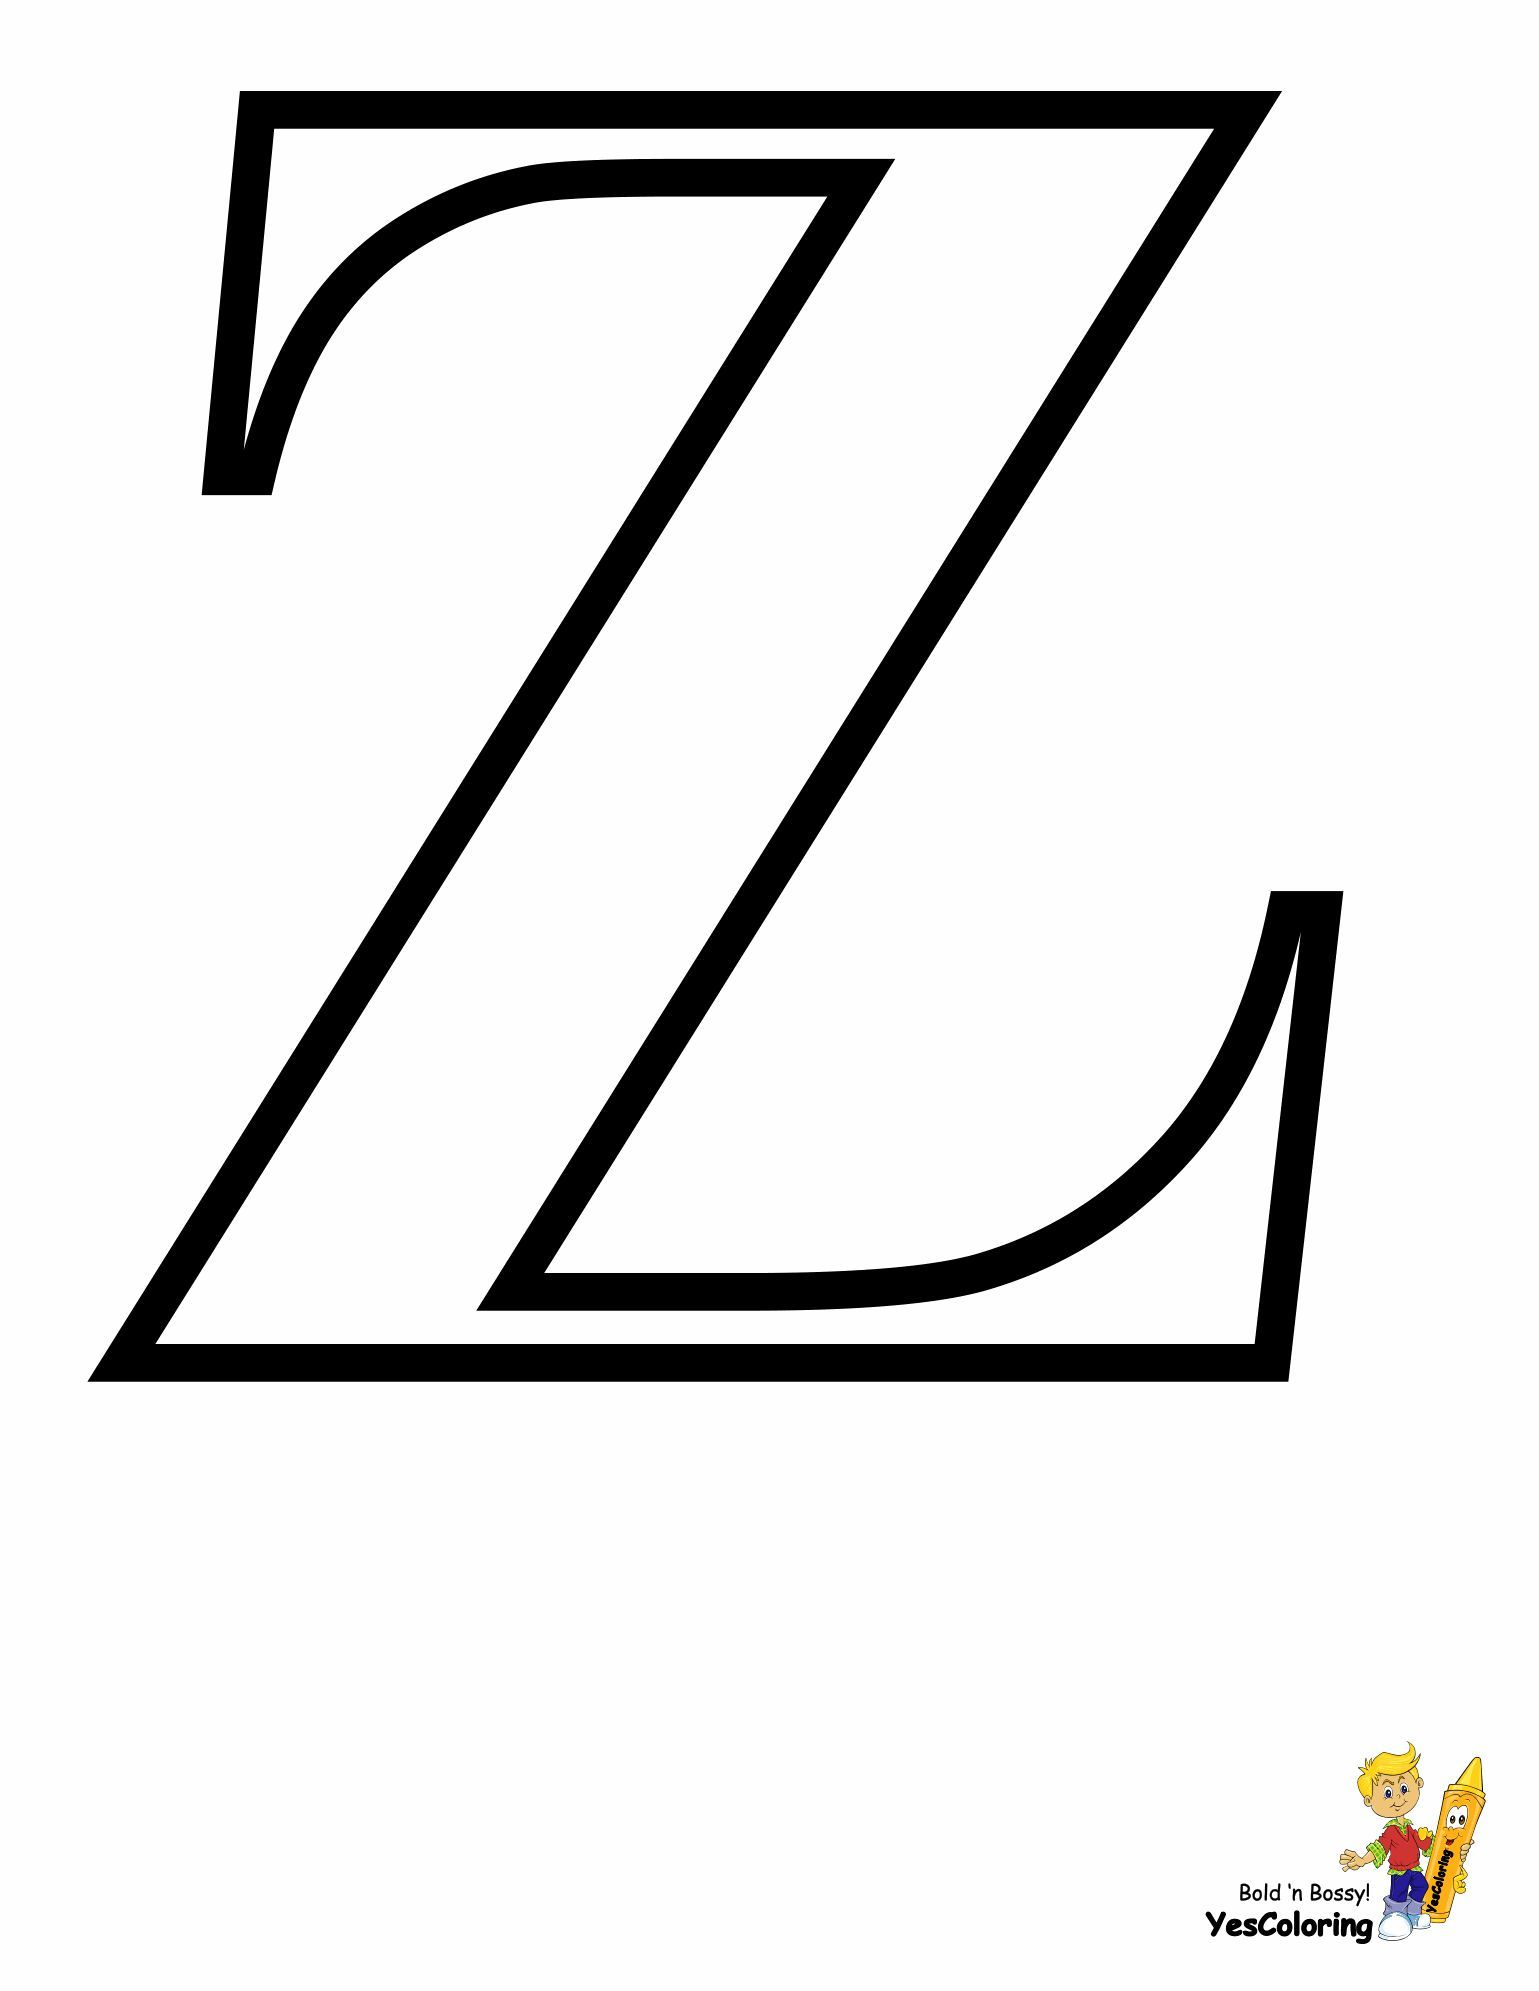 Print Out This Timeless Alphabet Coloring Sheet Off Letter Z Wow Https Www Yescoloring Com Alphabet Color I Alphabet Coloring Letter Z Printable Letters